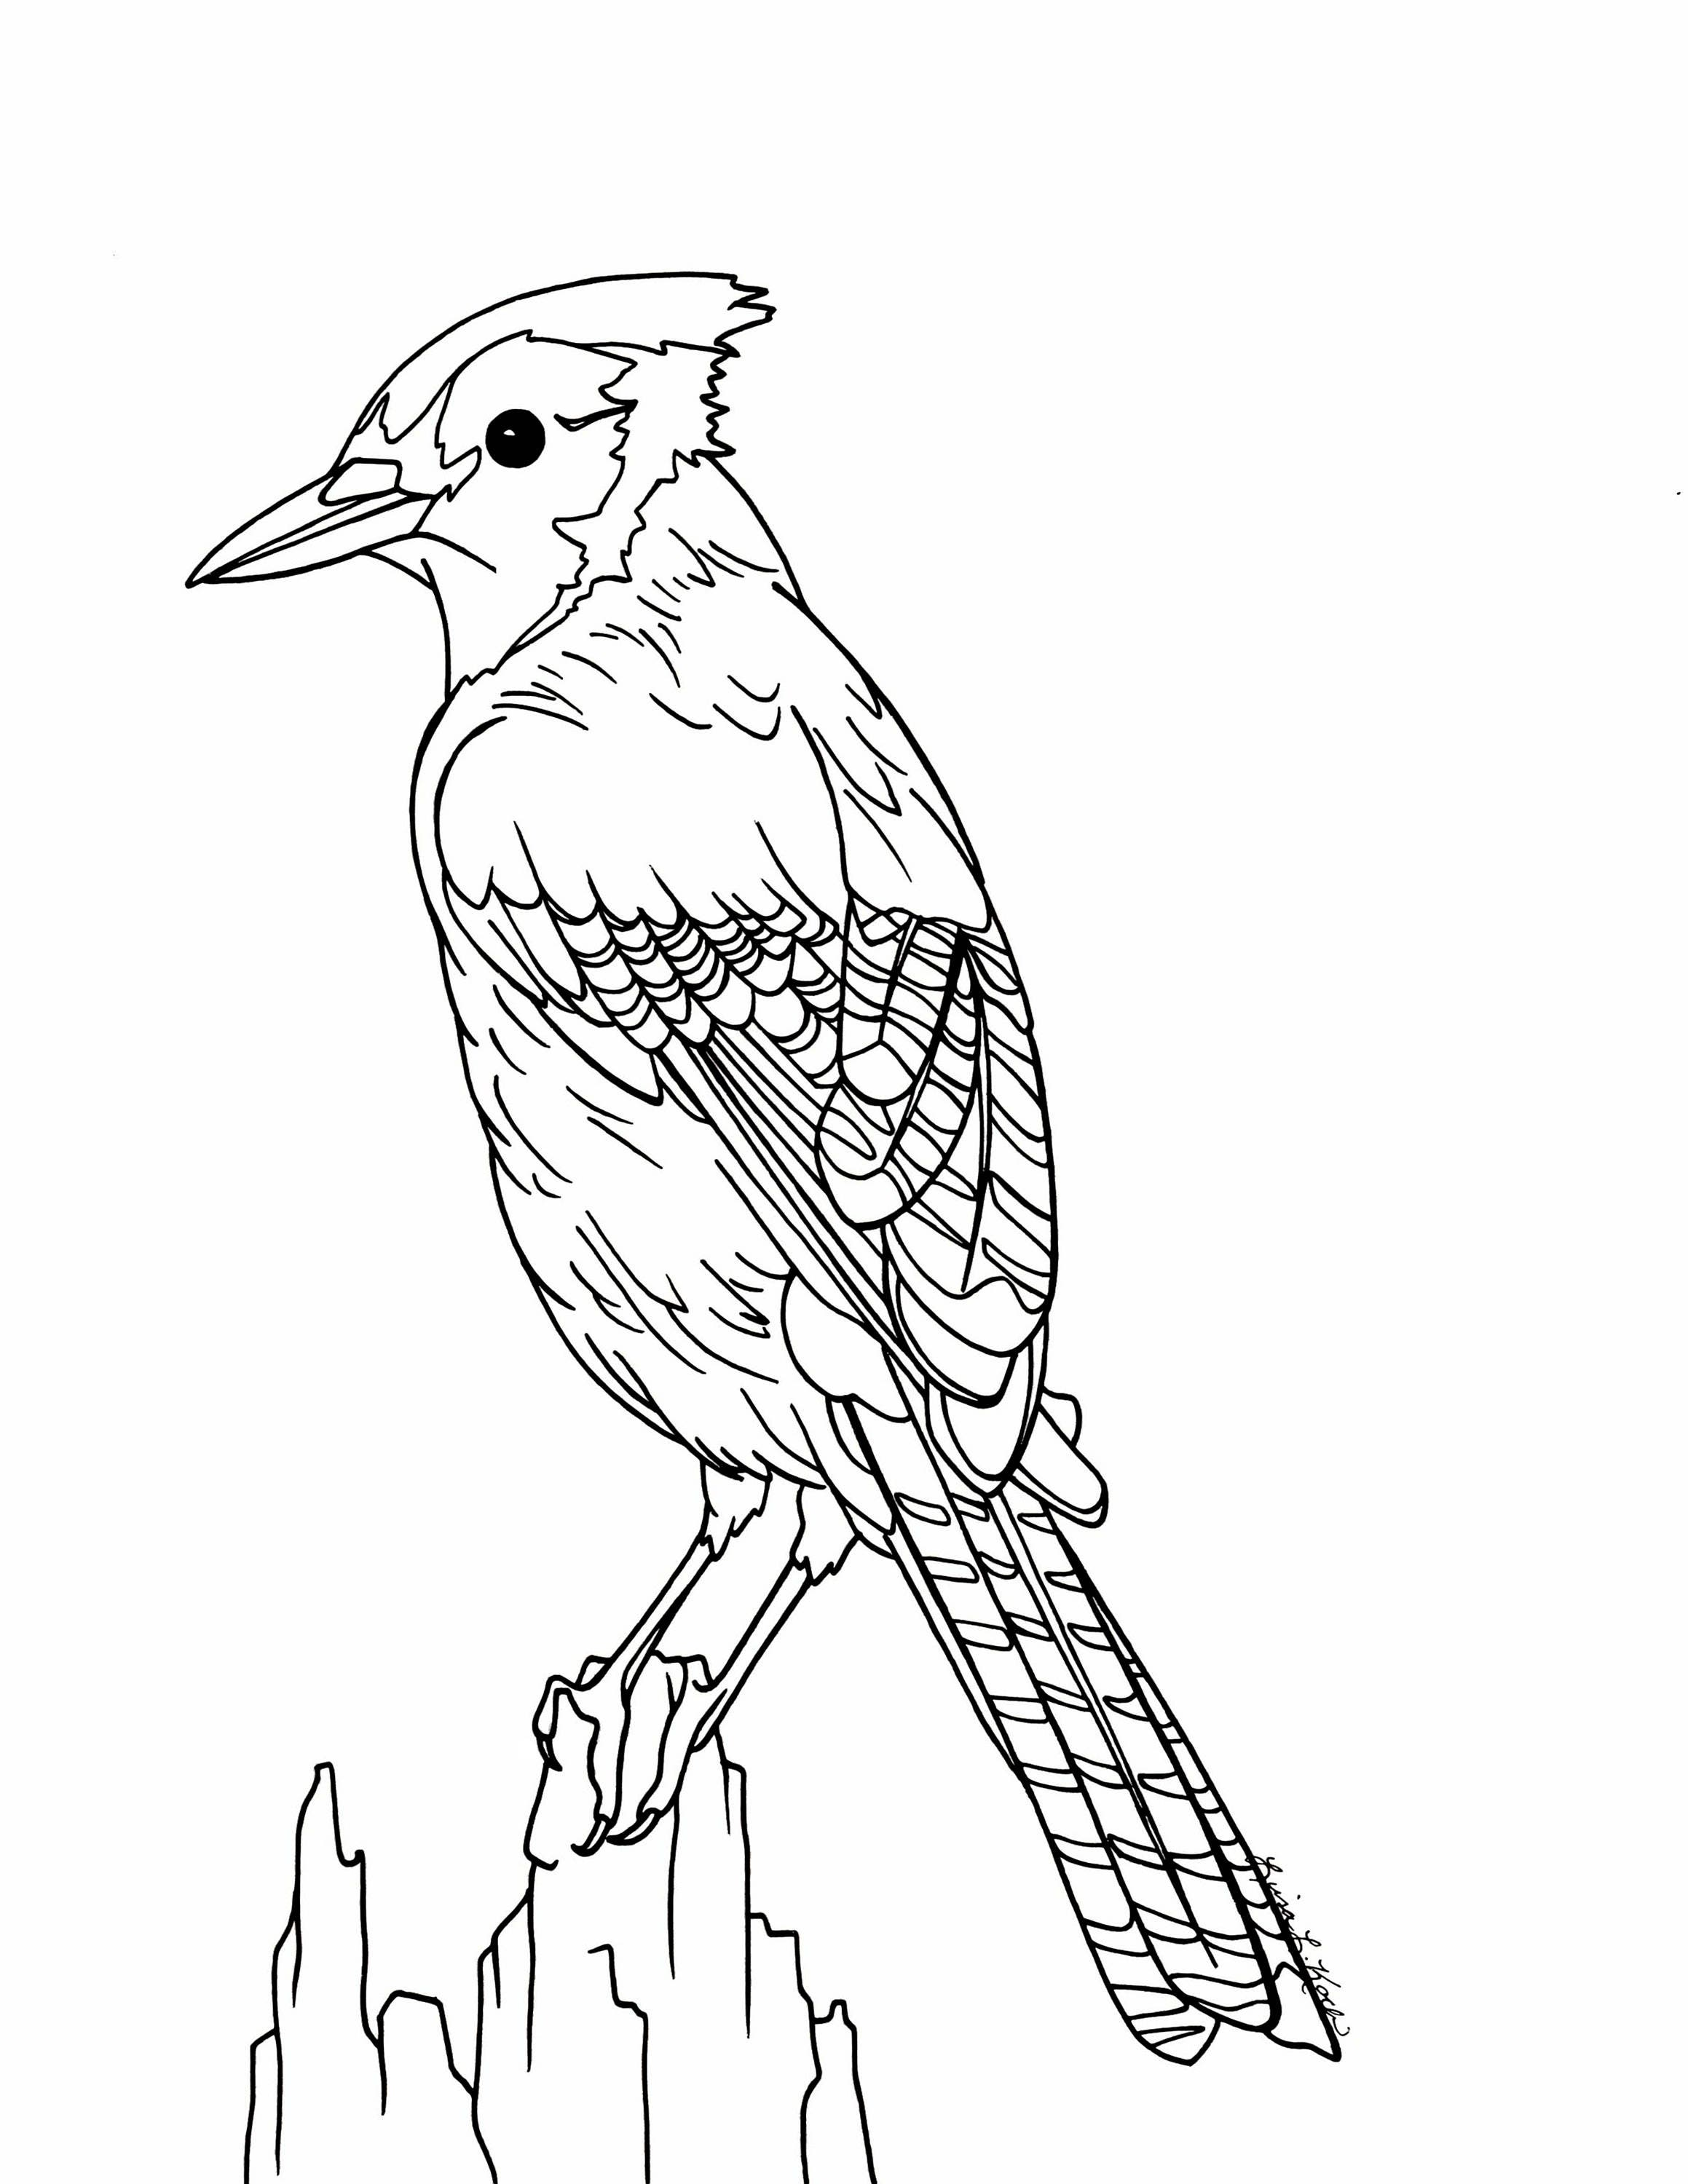 bluejay coloring pages - photo#20